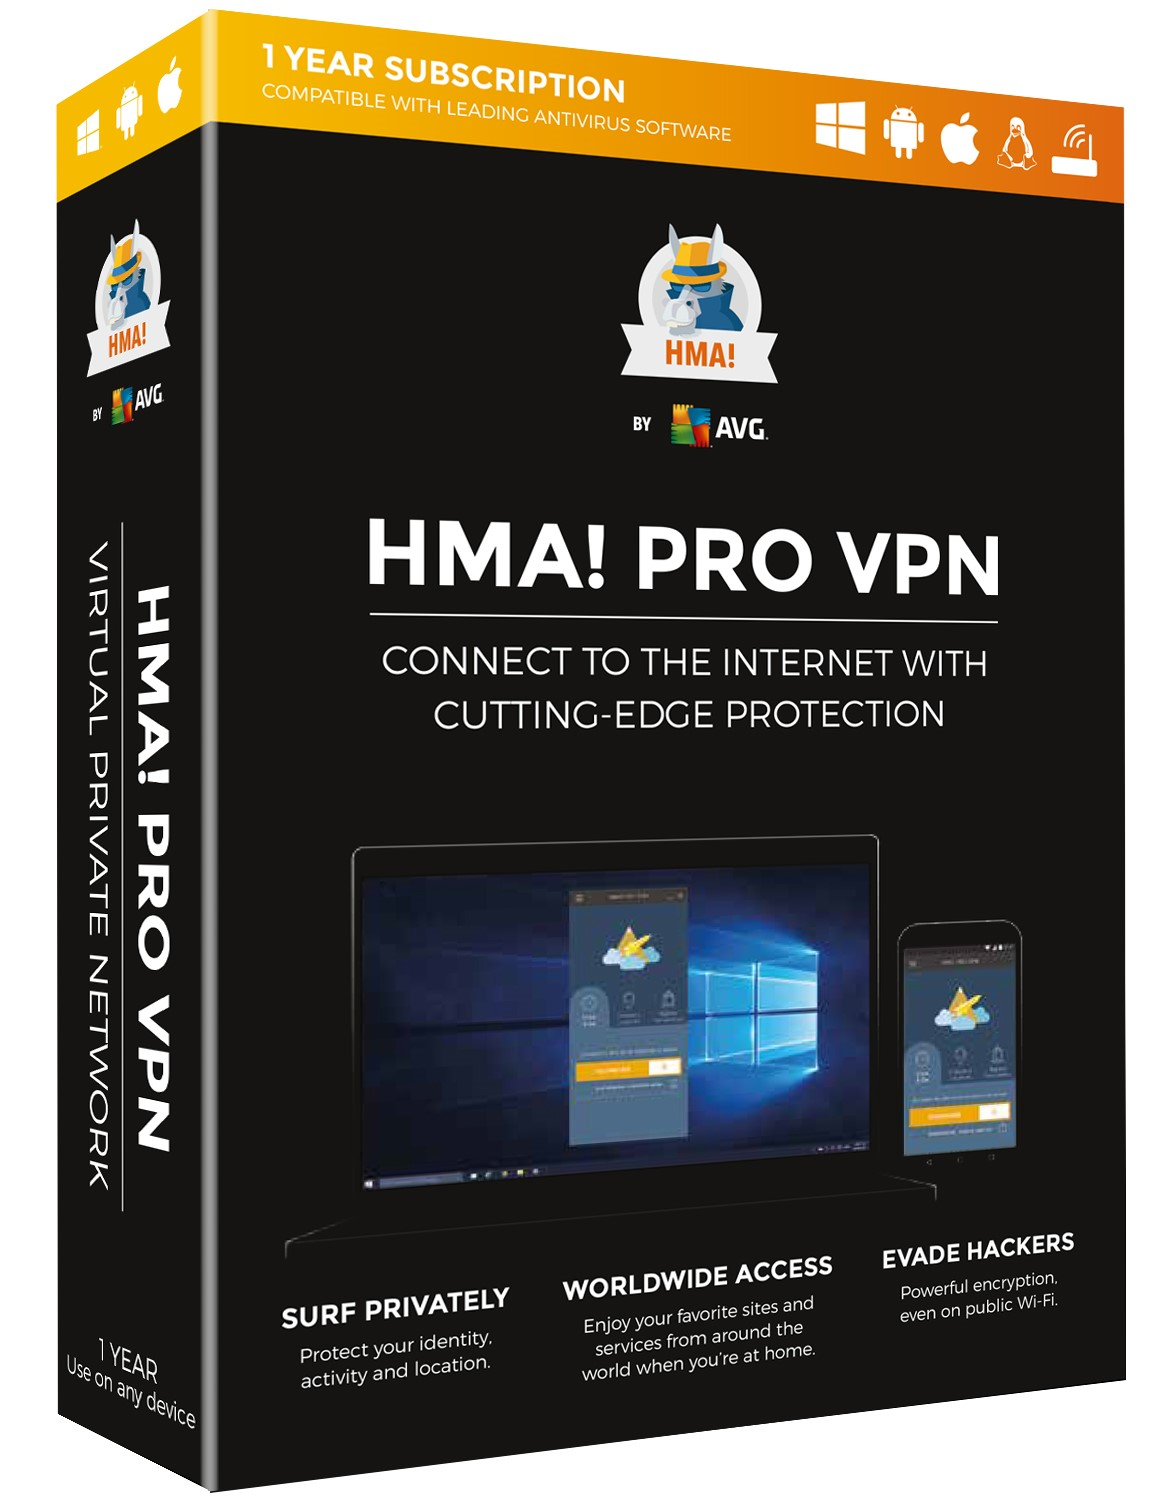 HMA Pro VPN 4.3.133 Crack + License Key Free Download